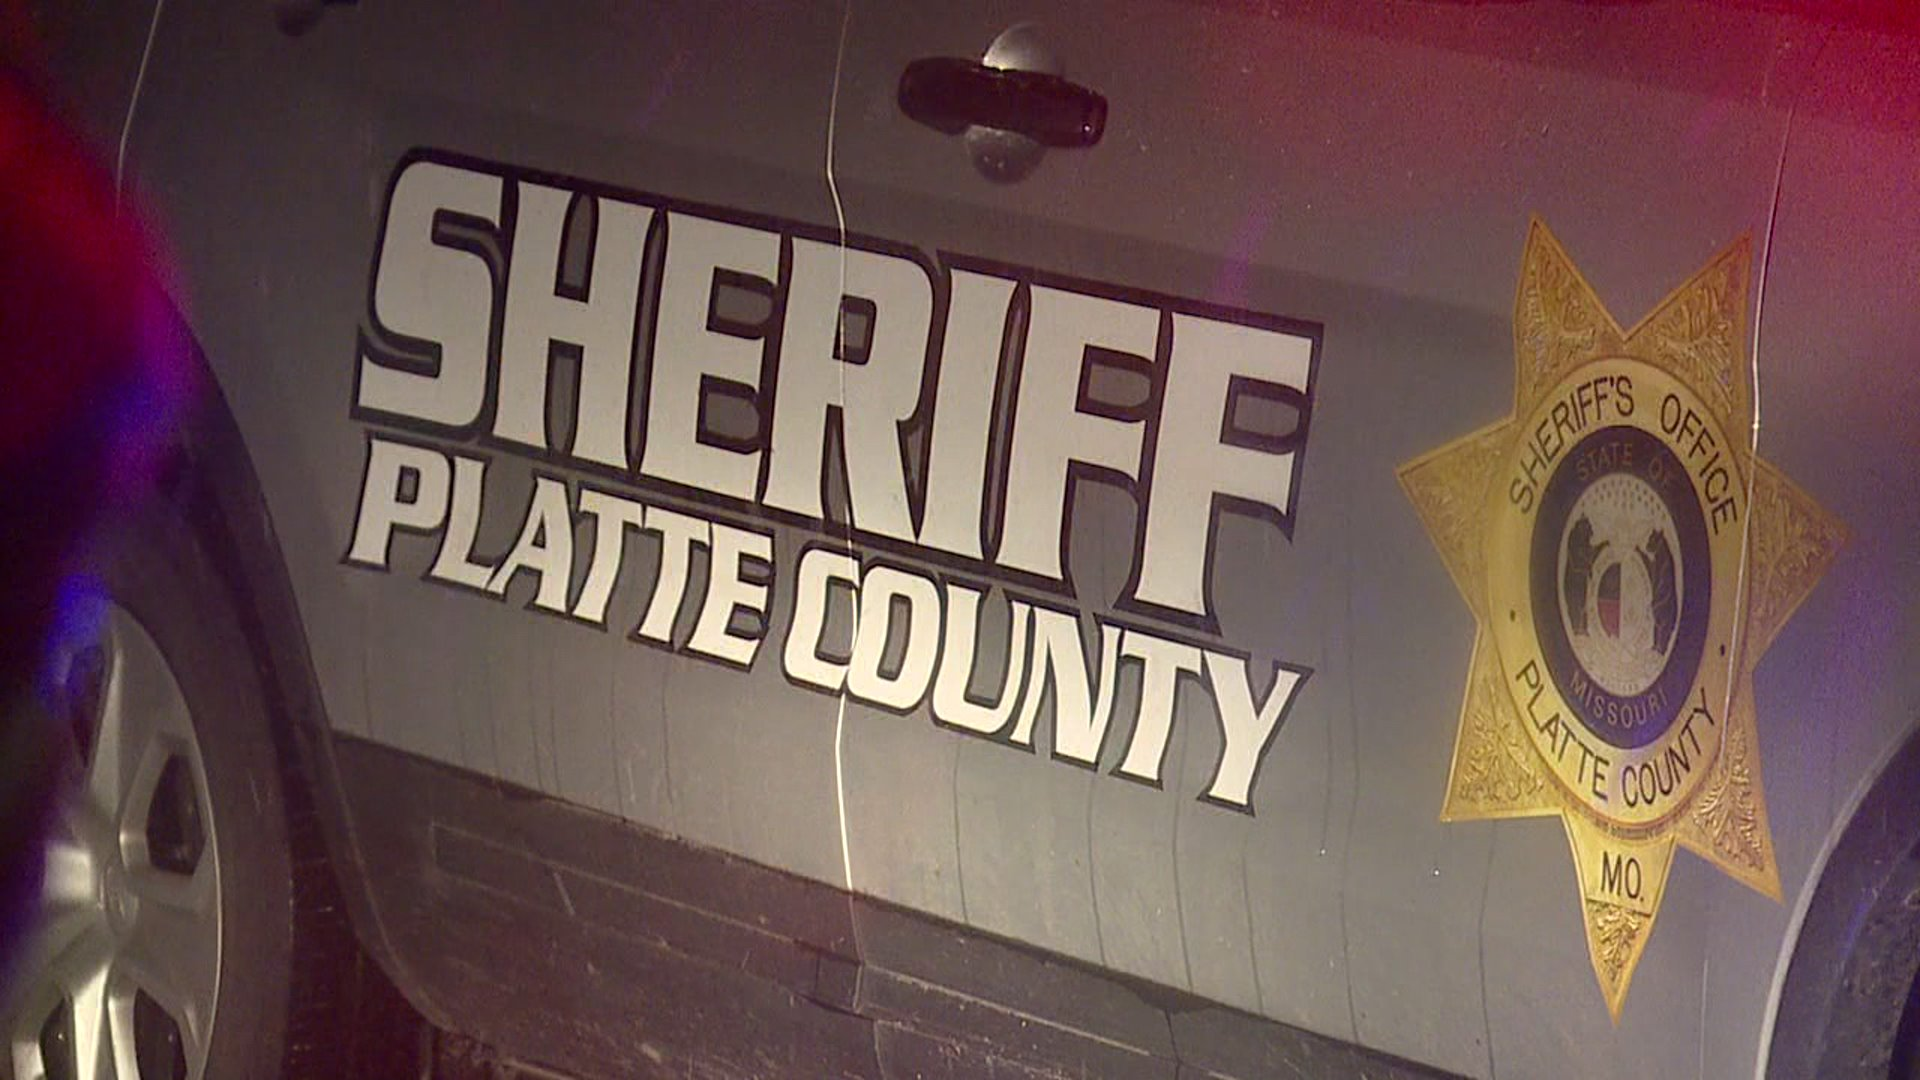 platte county sheriff car picture